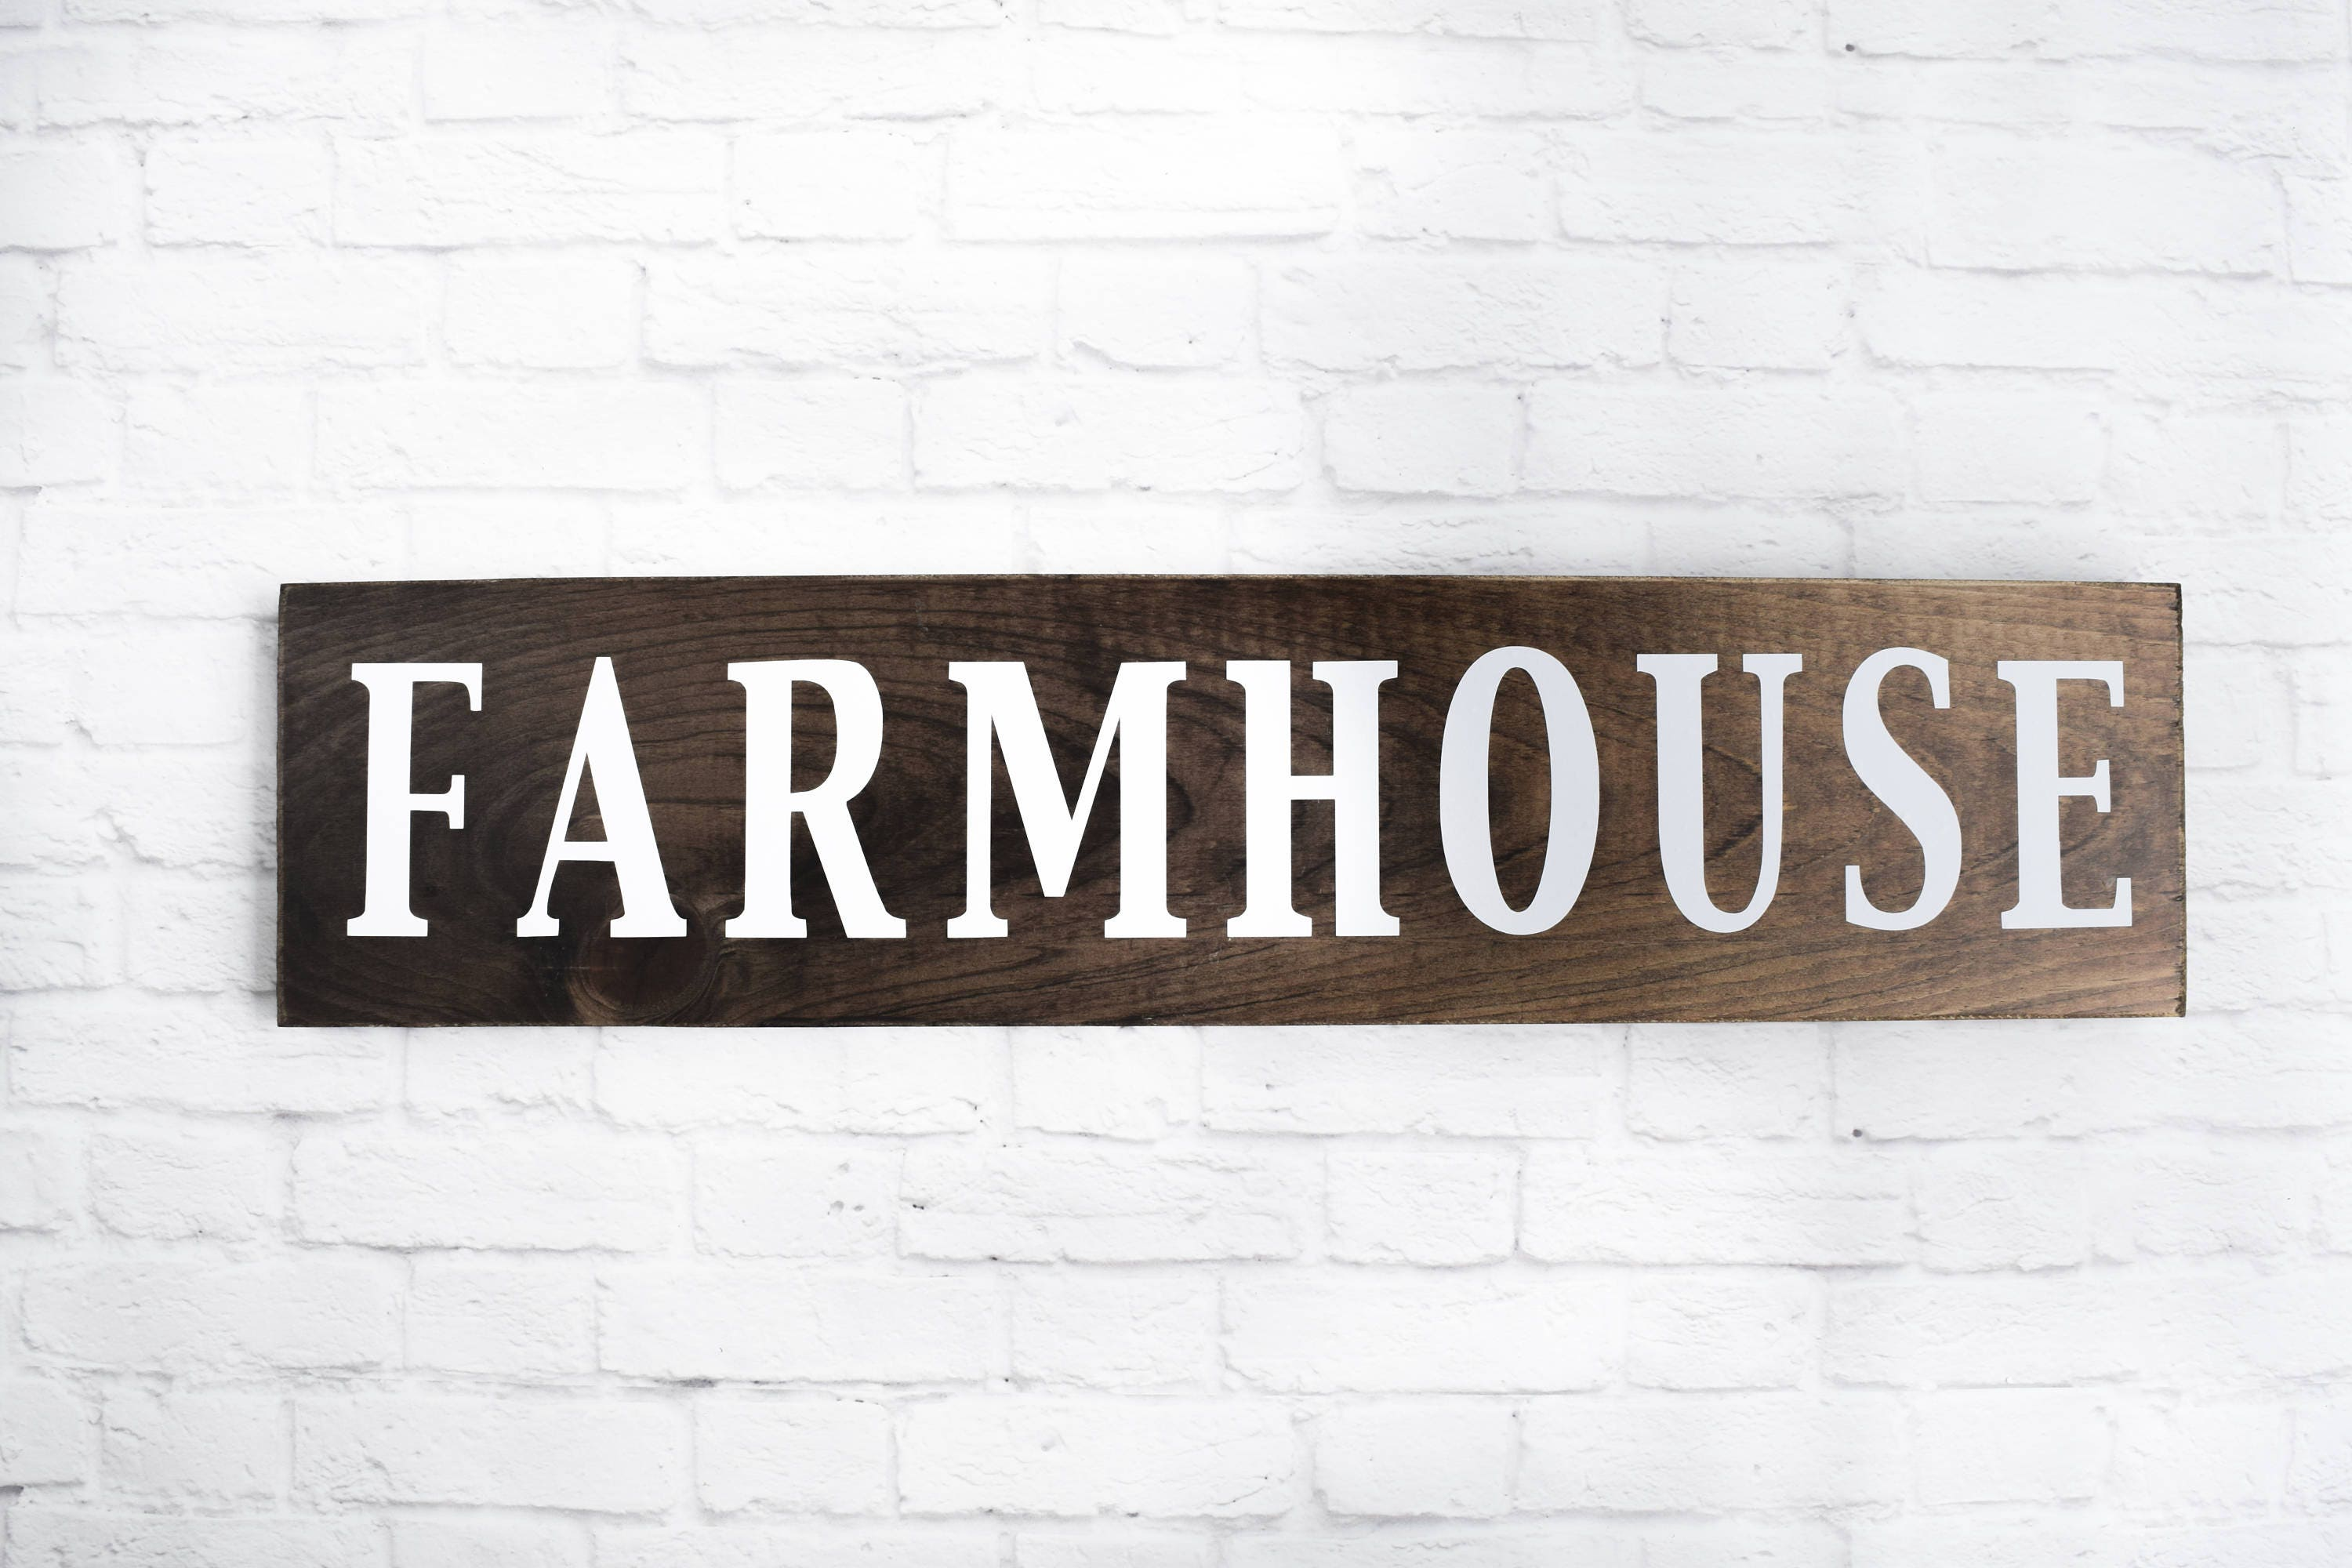 Wall Decor Signs With Sayings : Farmhouse wood sign wooden sayings wall d?cor rustic